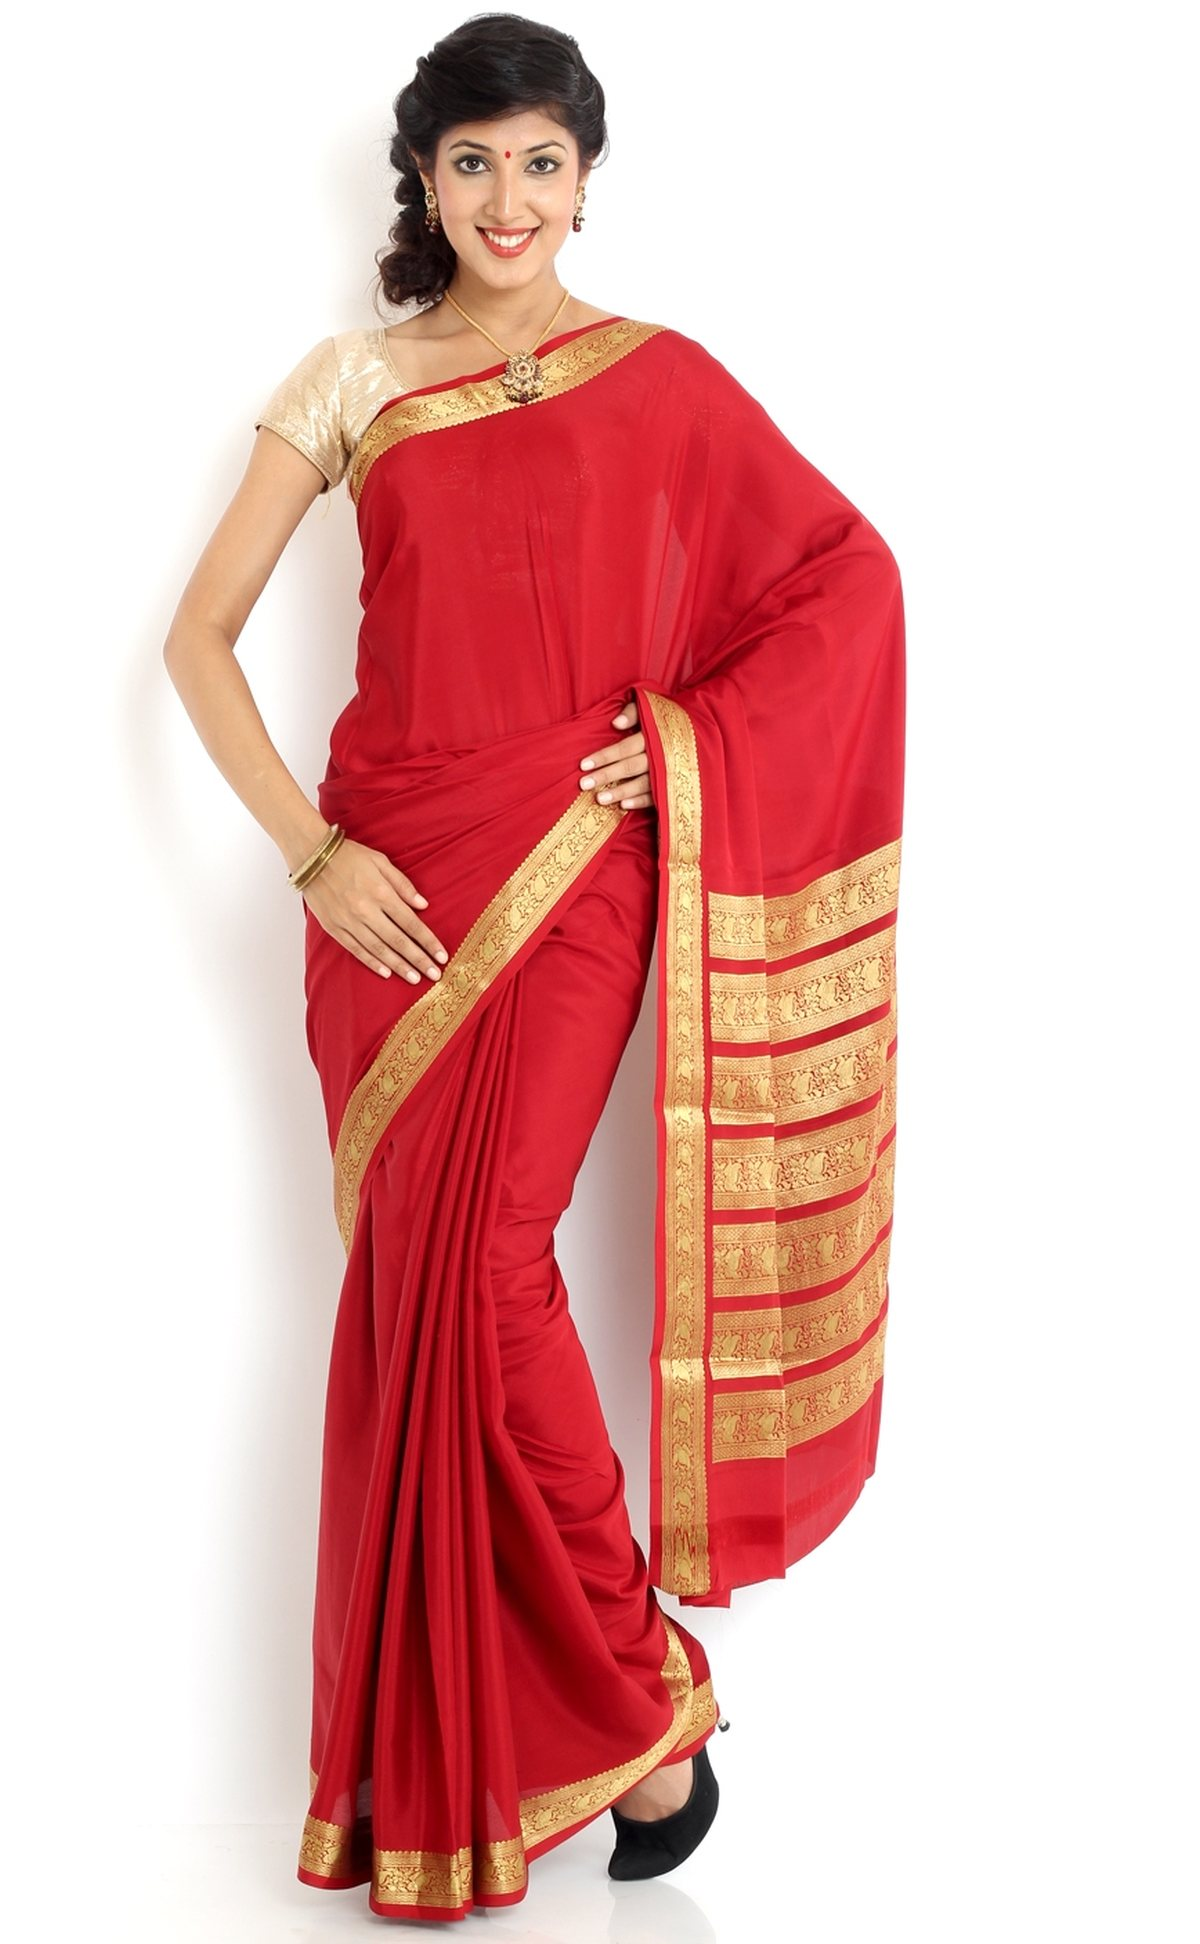 http://cdn.shopclues.com/images/detailed/8782/SSSB163_1415963301.jpg